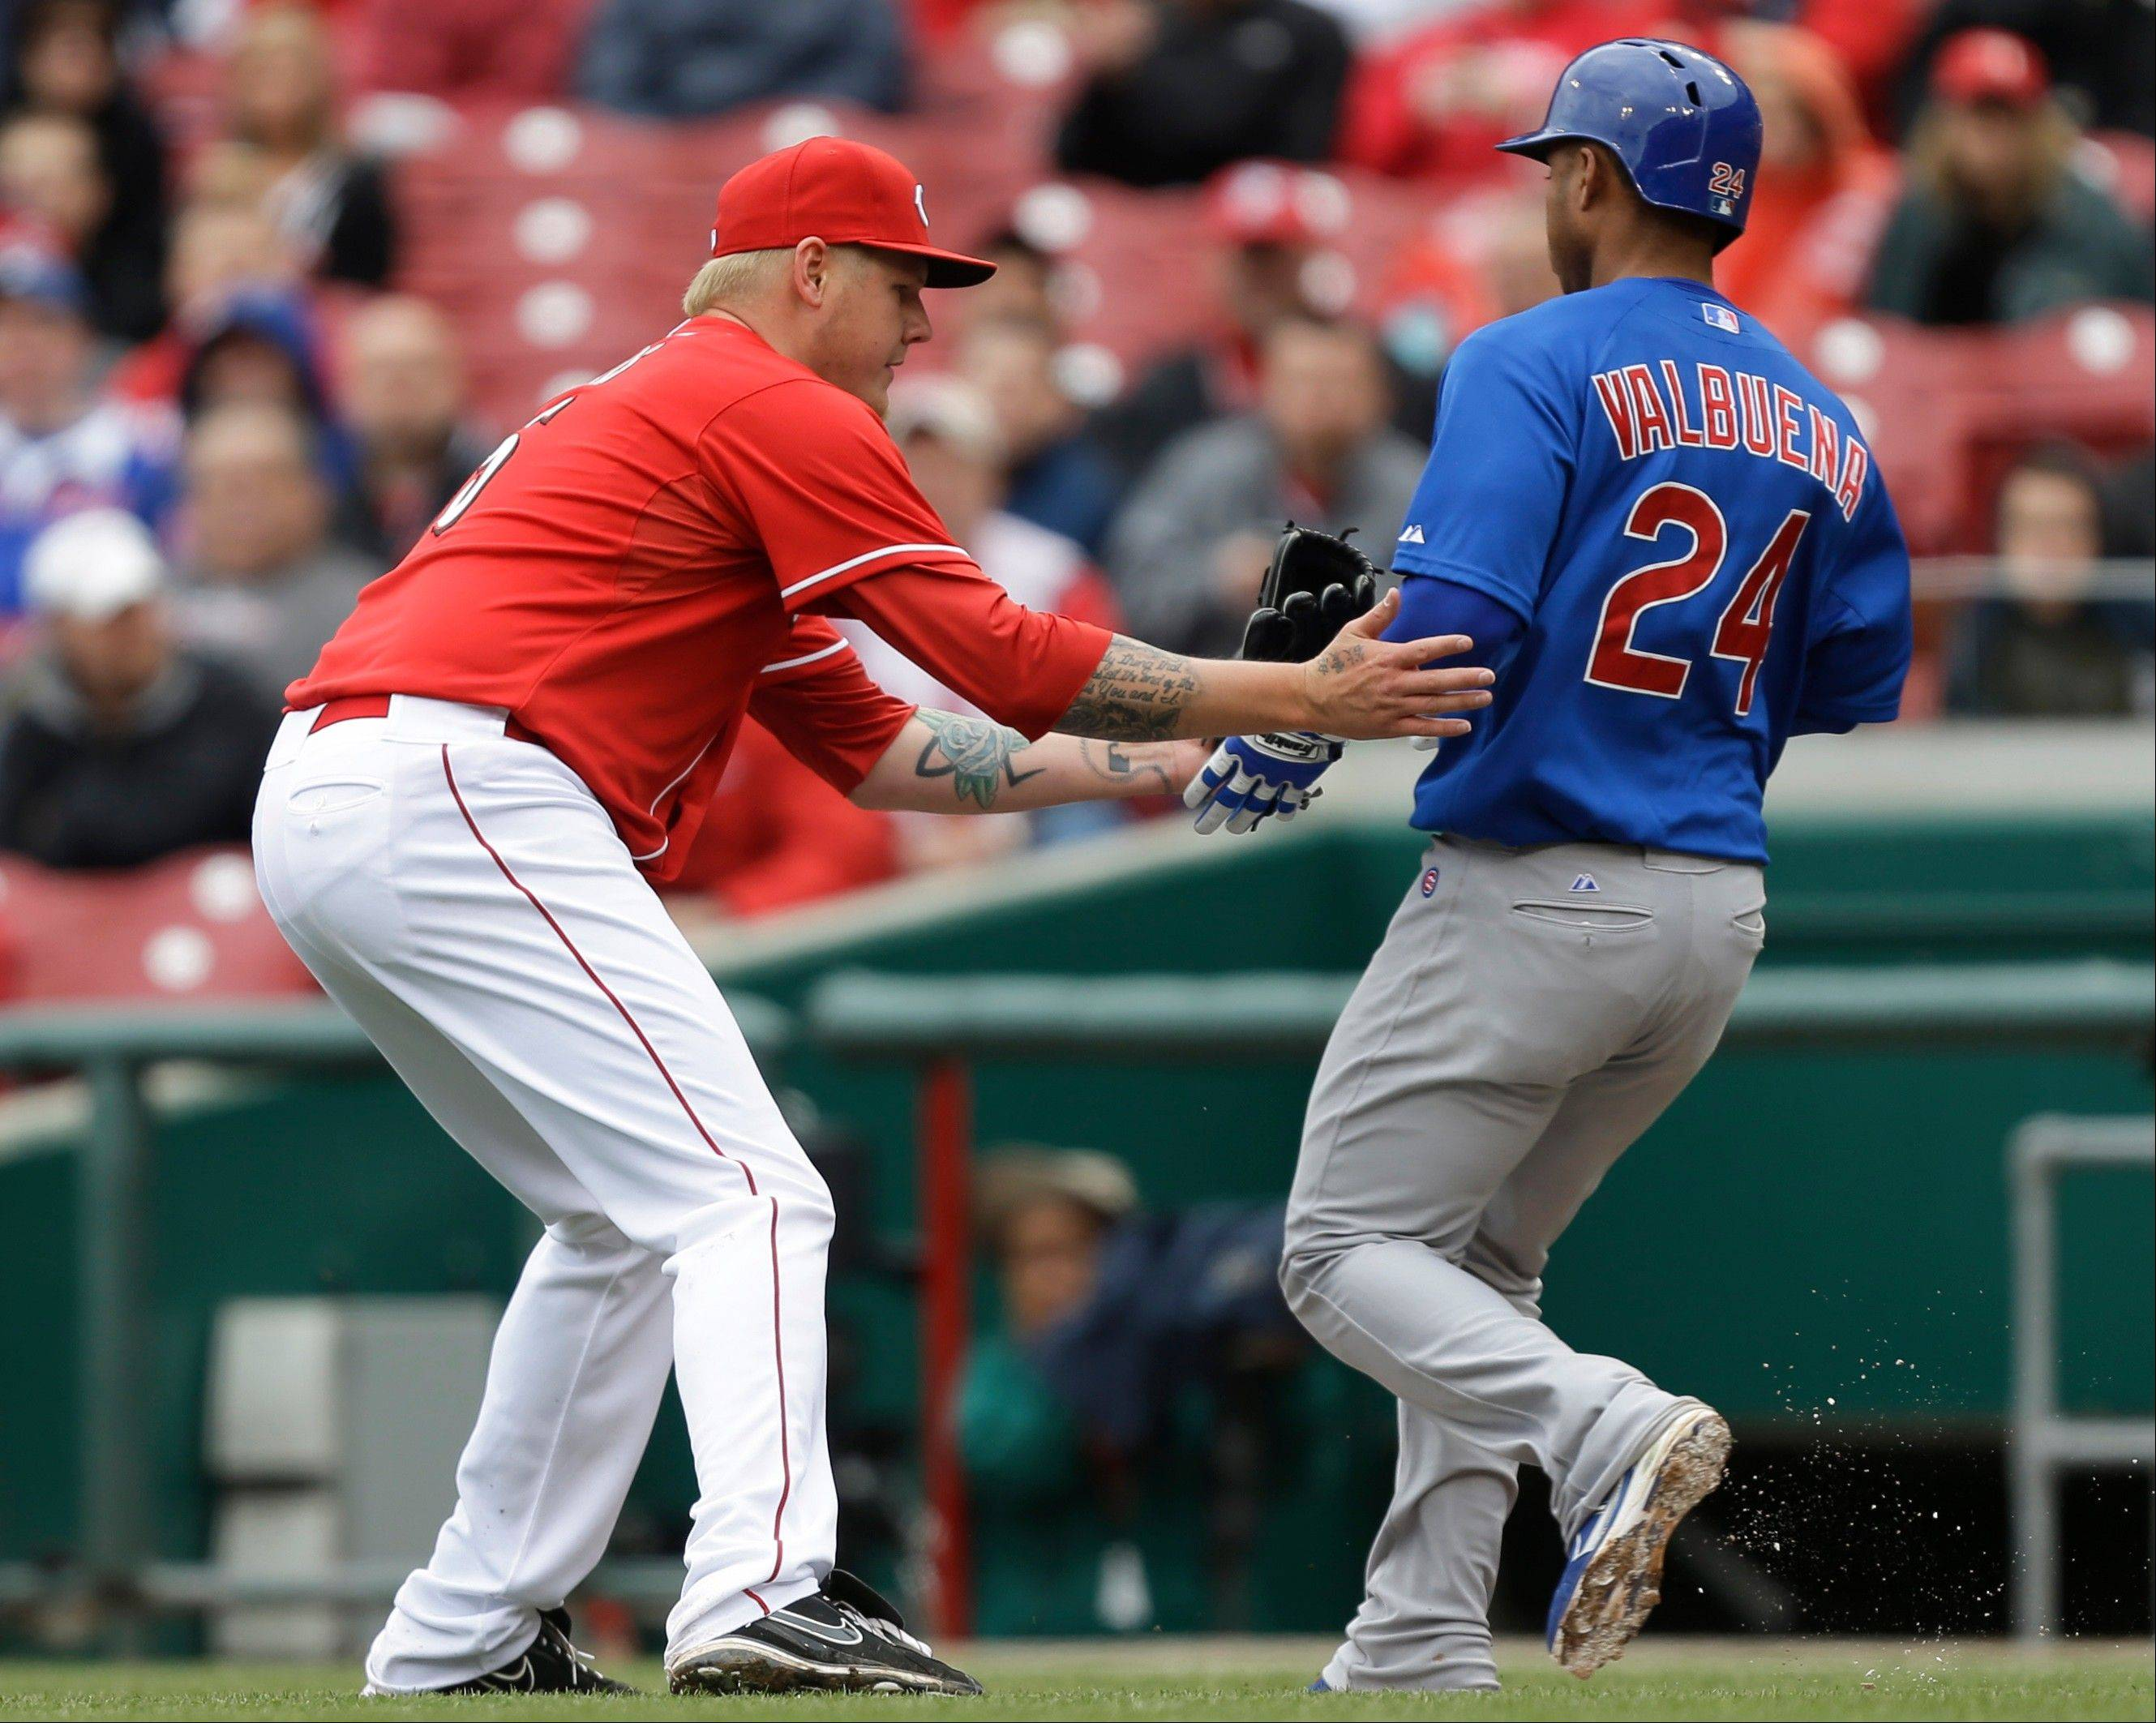 Cincinnati Reds starting pitcher Mat Latos tags out Chicago Cubs� Luis Valbuena (24) after Latos fielded a ground ball Wednesday in Cincinnati. The Cubs lost to the Reds 1-0.